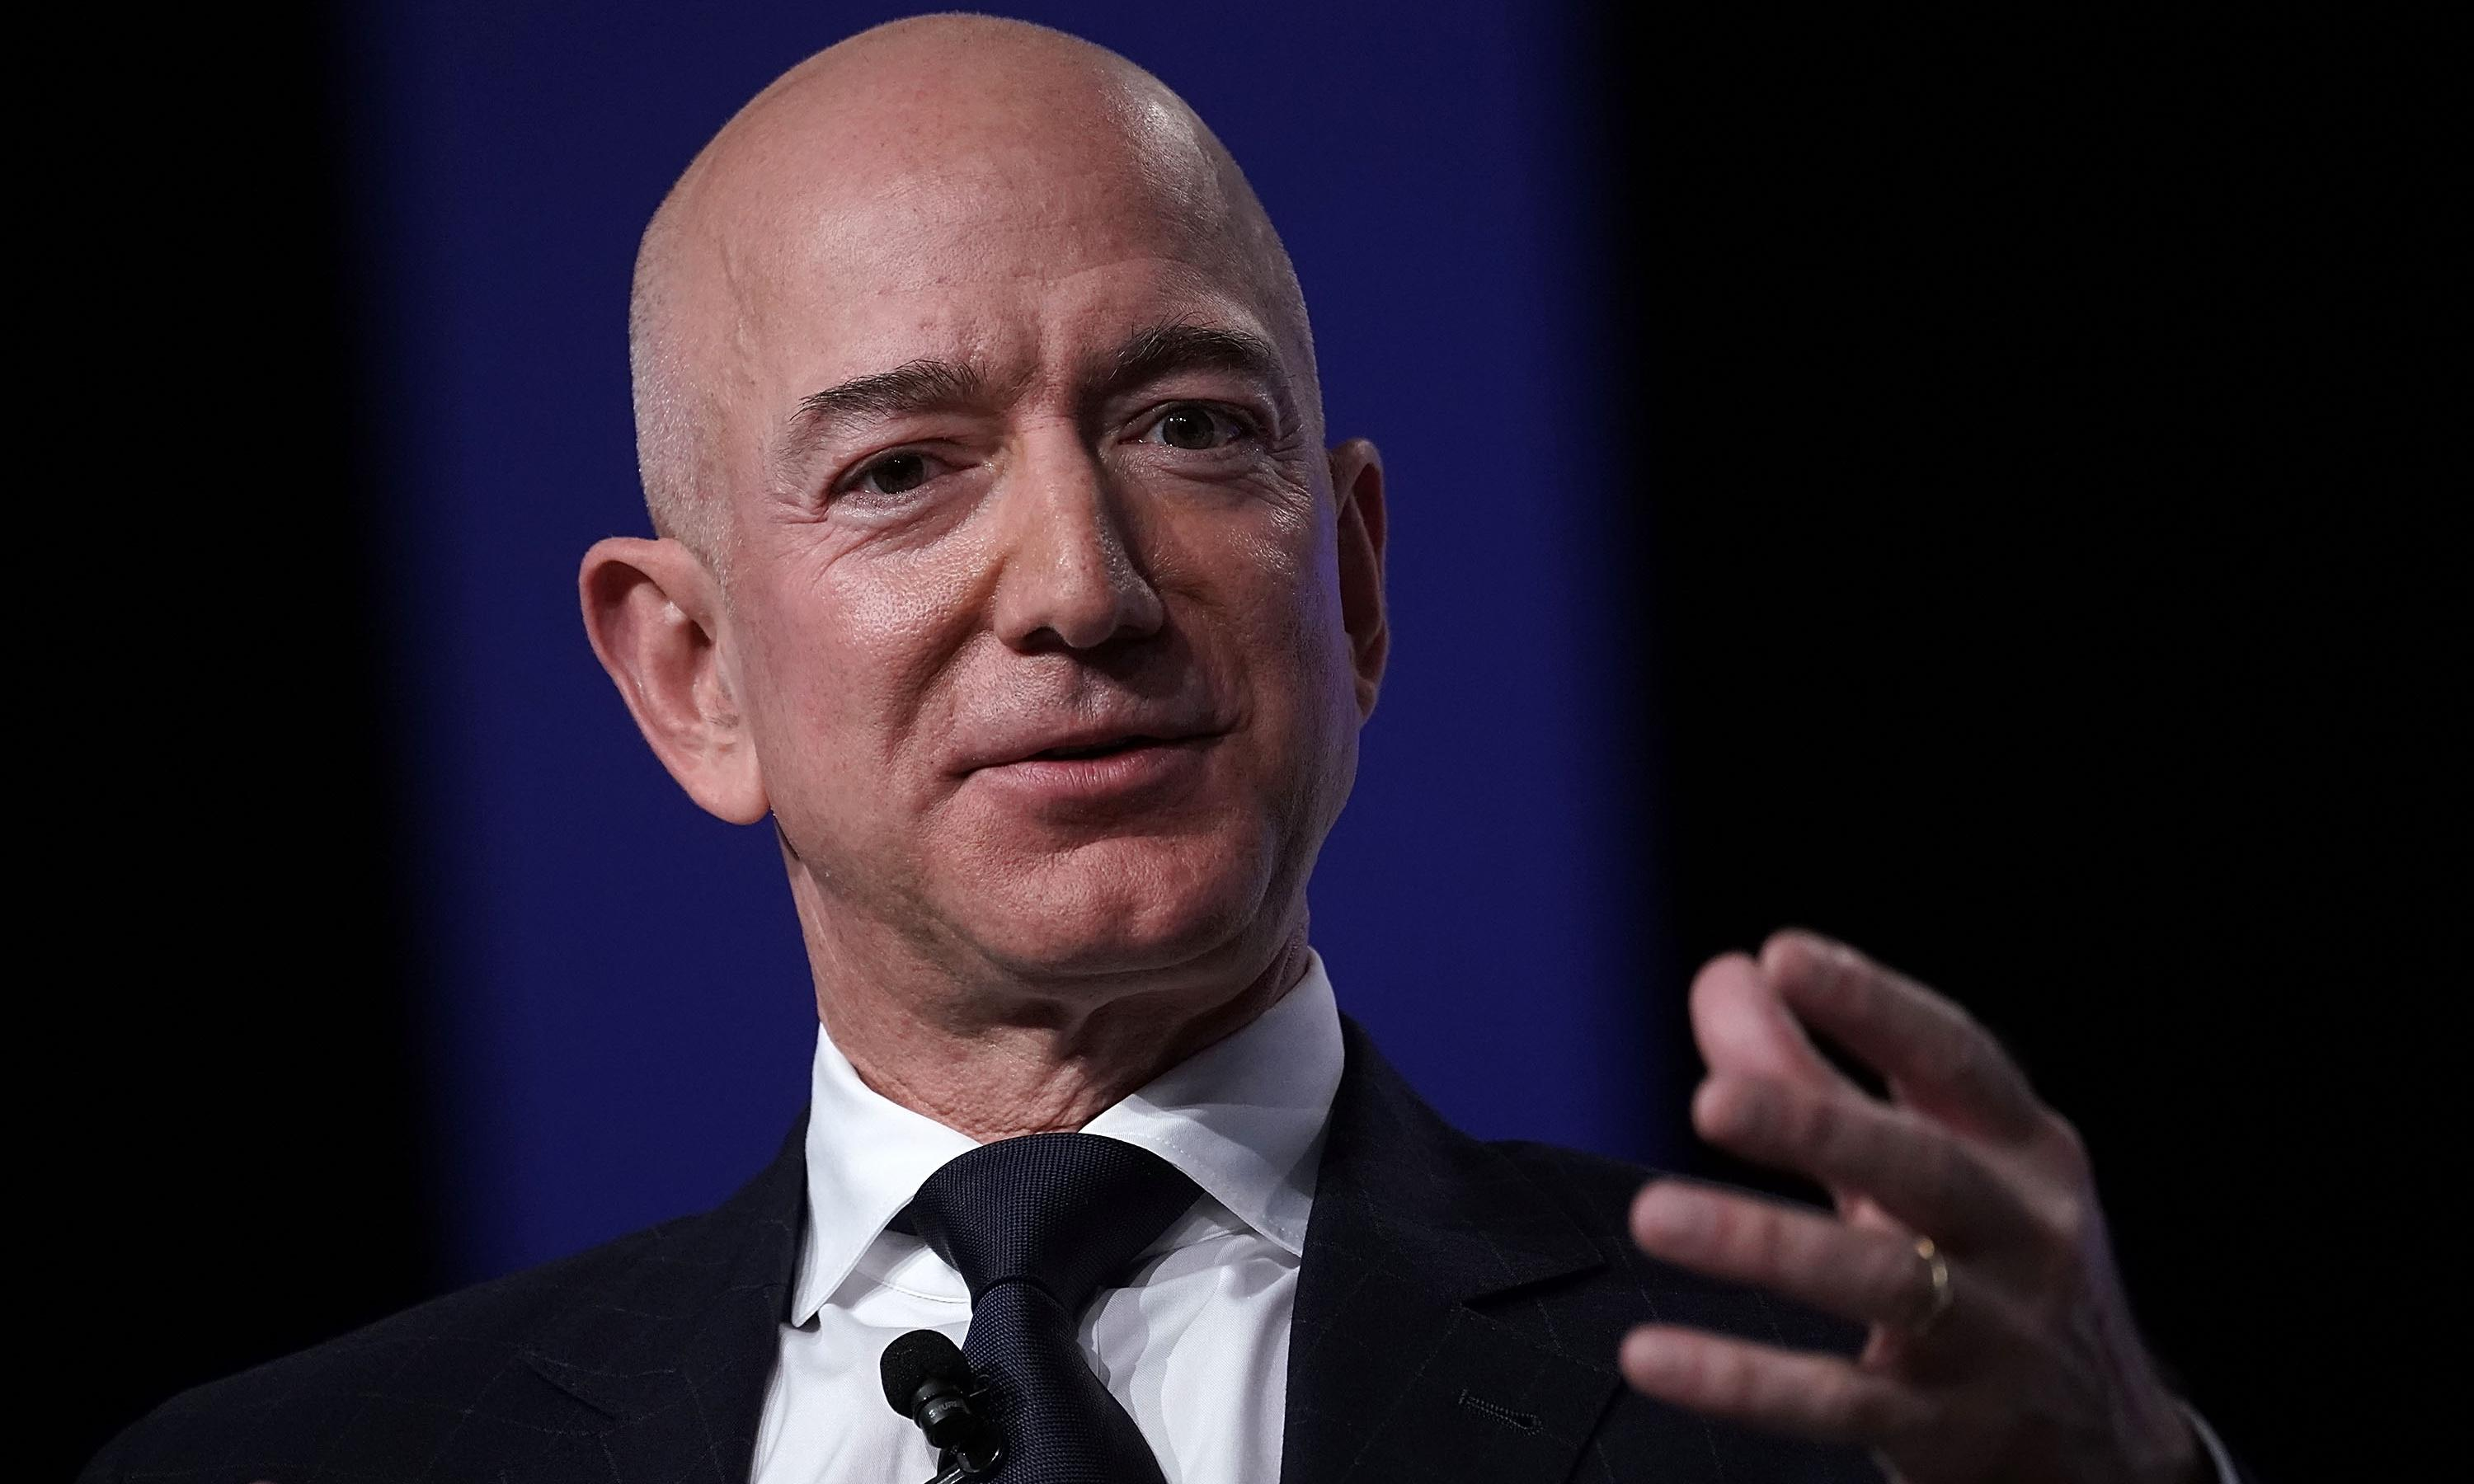 Jeff Bezos tells employees 'one day Amazon will fail'